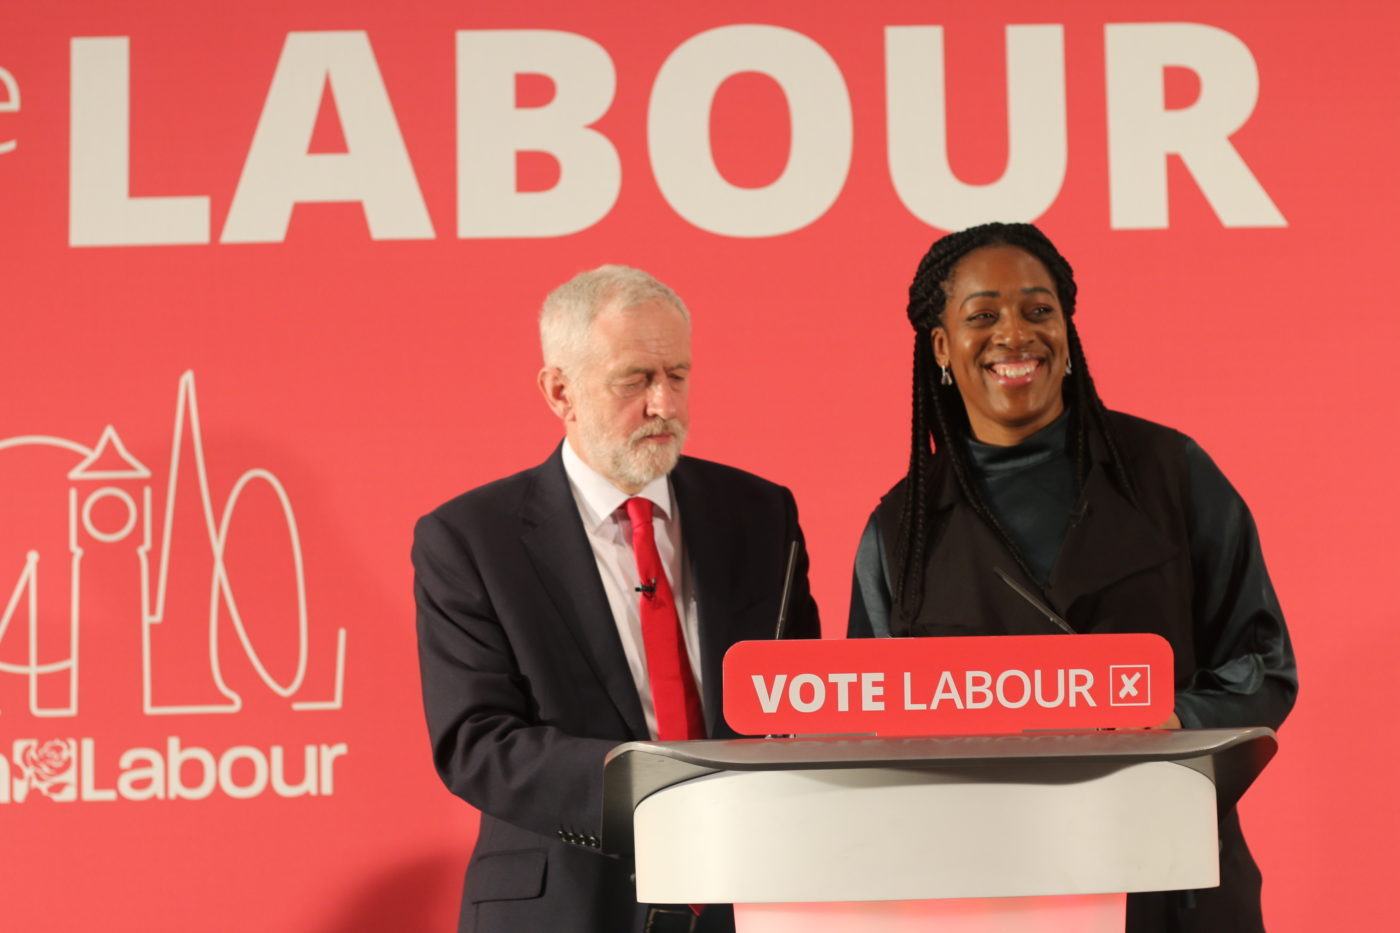 Kate Osamor standing next to Jeremy Corbyn, the Edmonton MP has now stood down as his Shadow Minister for Internation Development